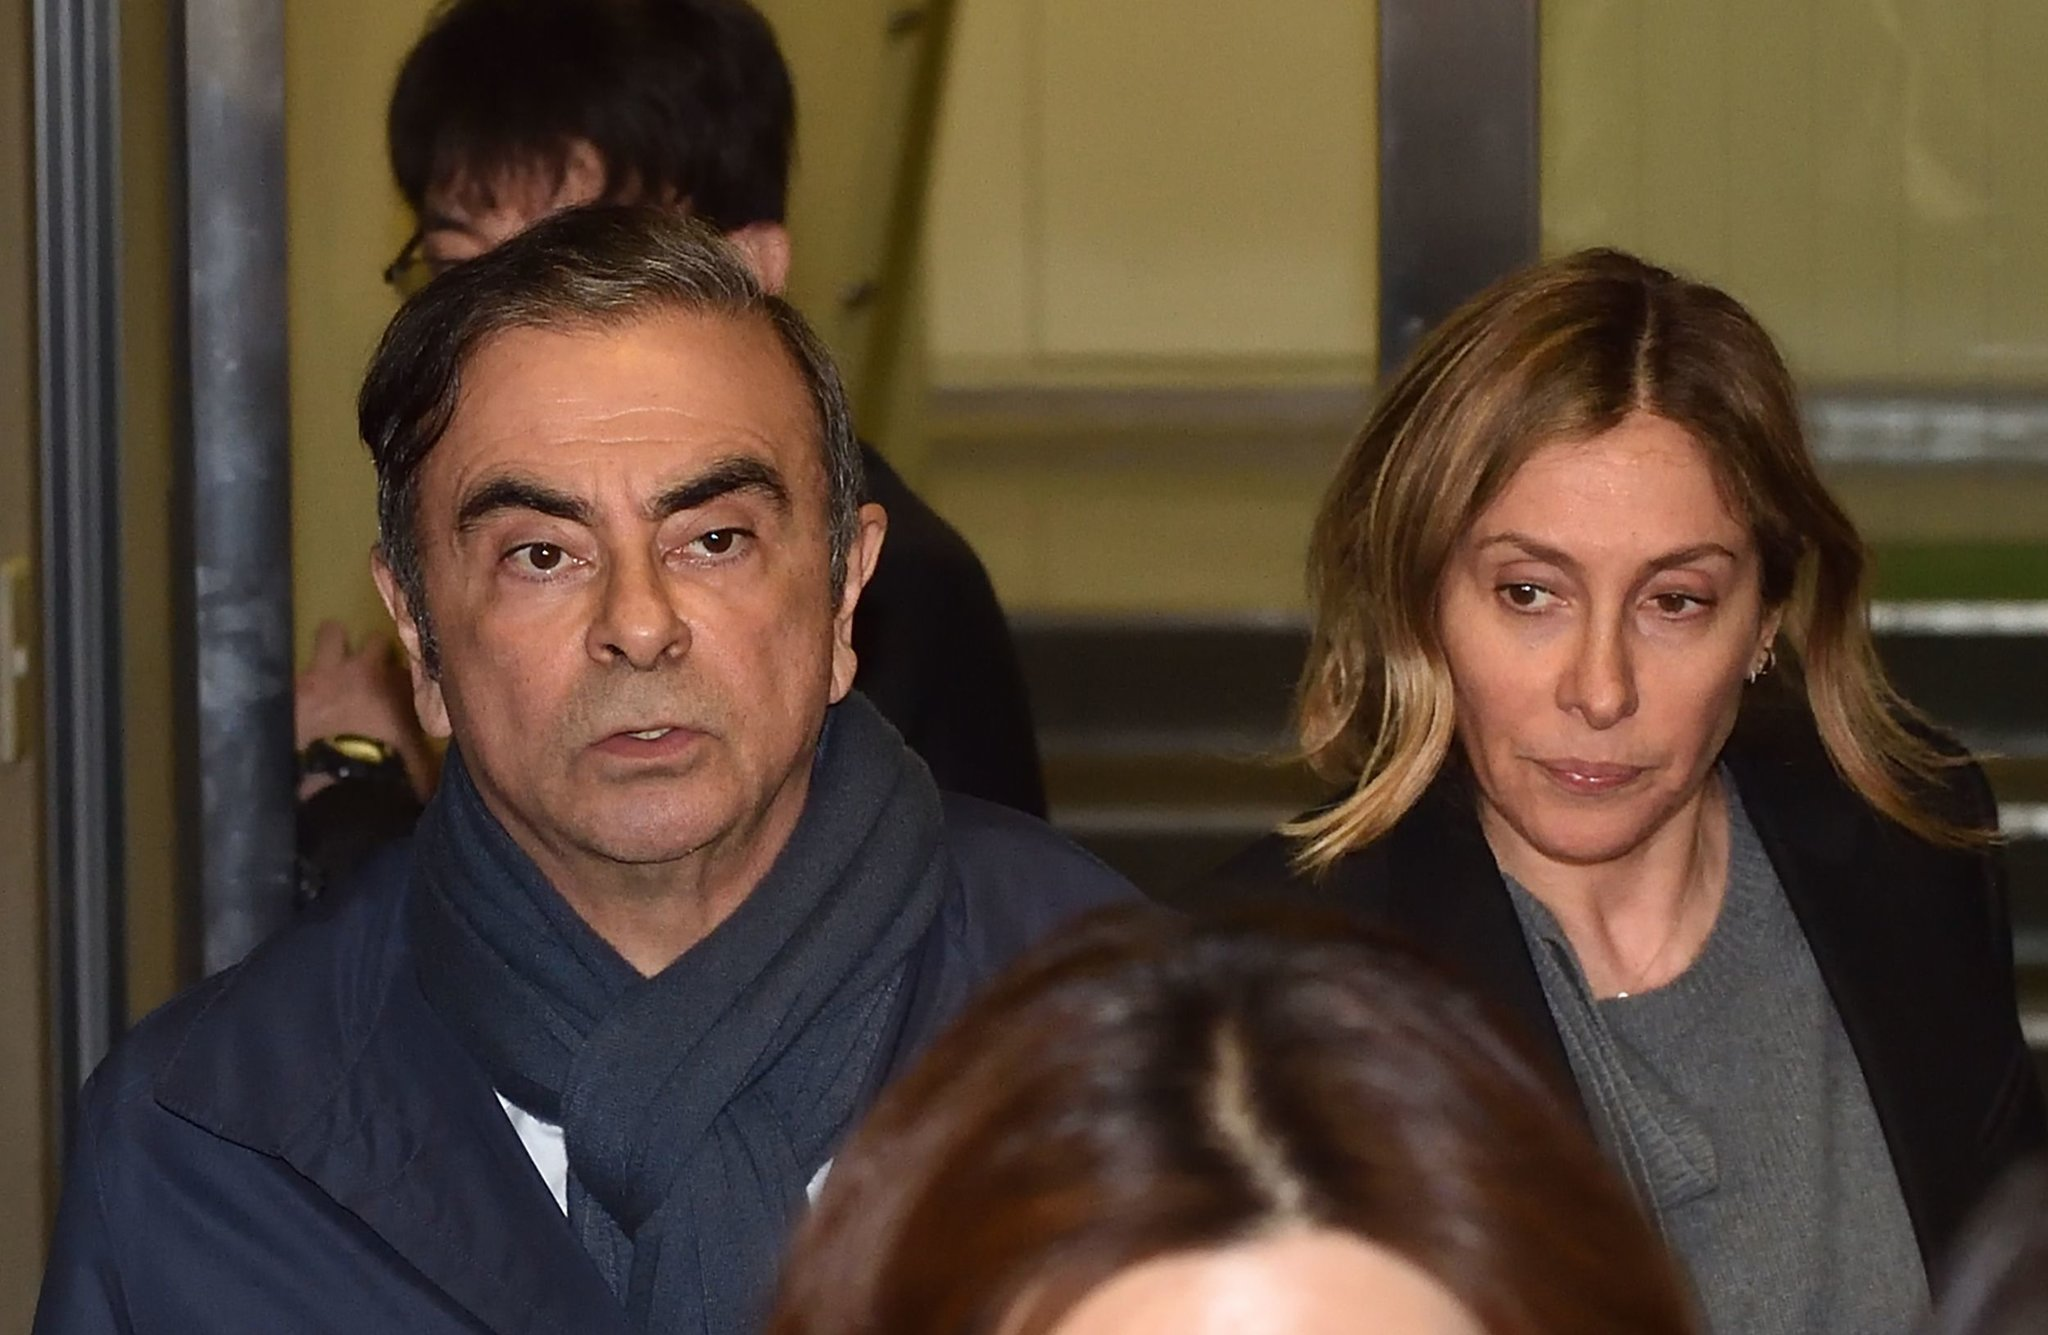 'I'm going to clear my name': Carlos Ghosn seeks truth, justice and freedom in Beirut